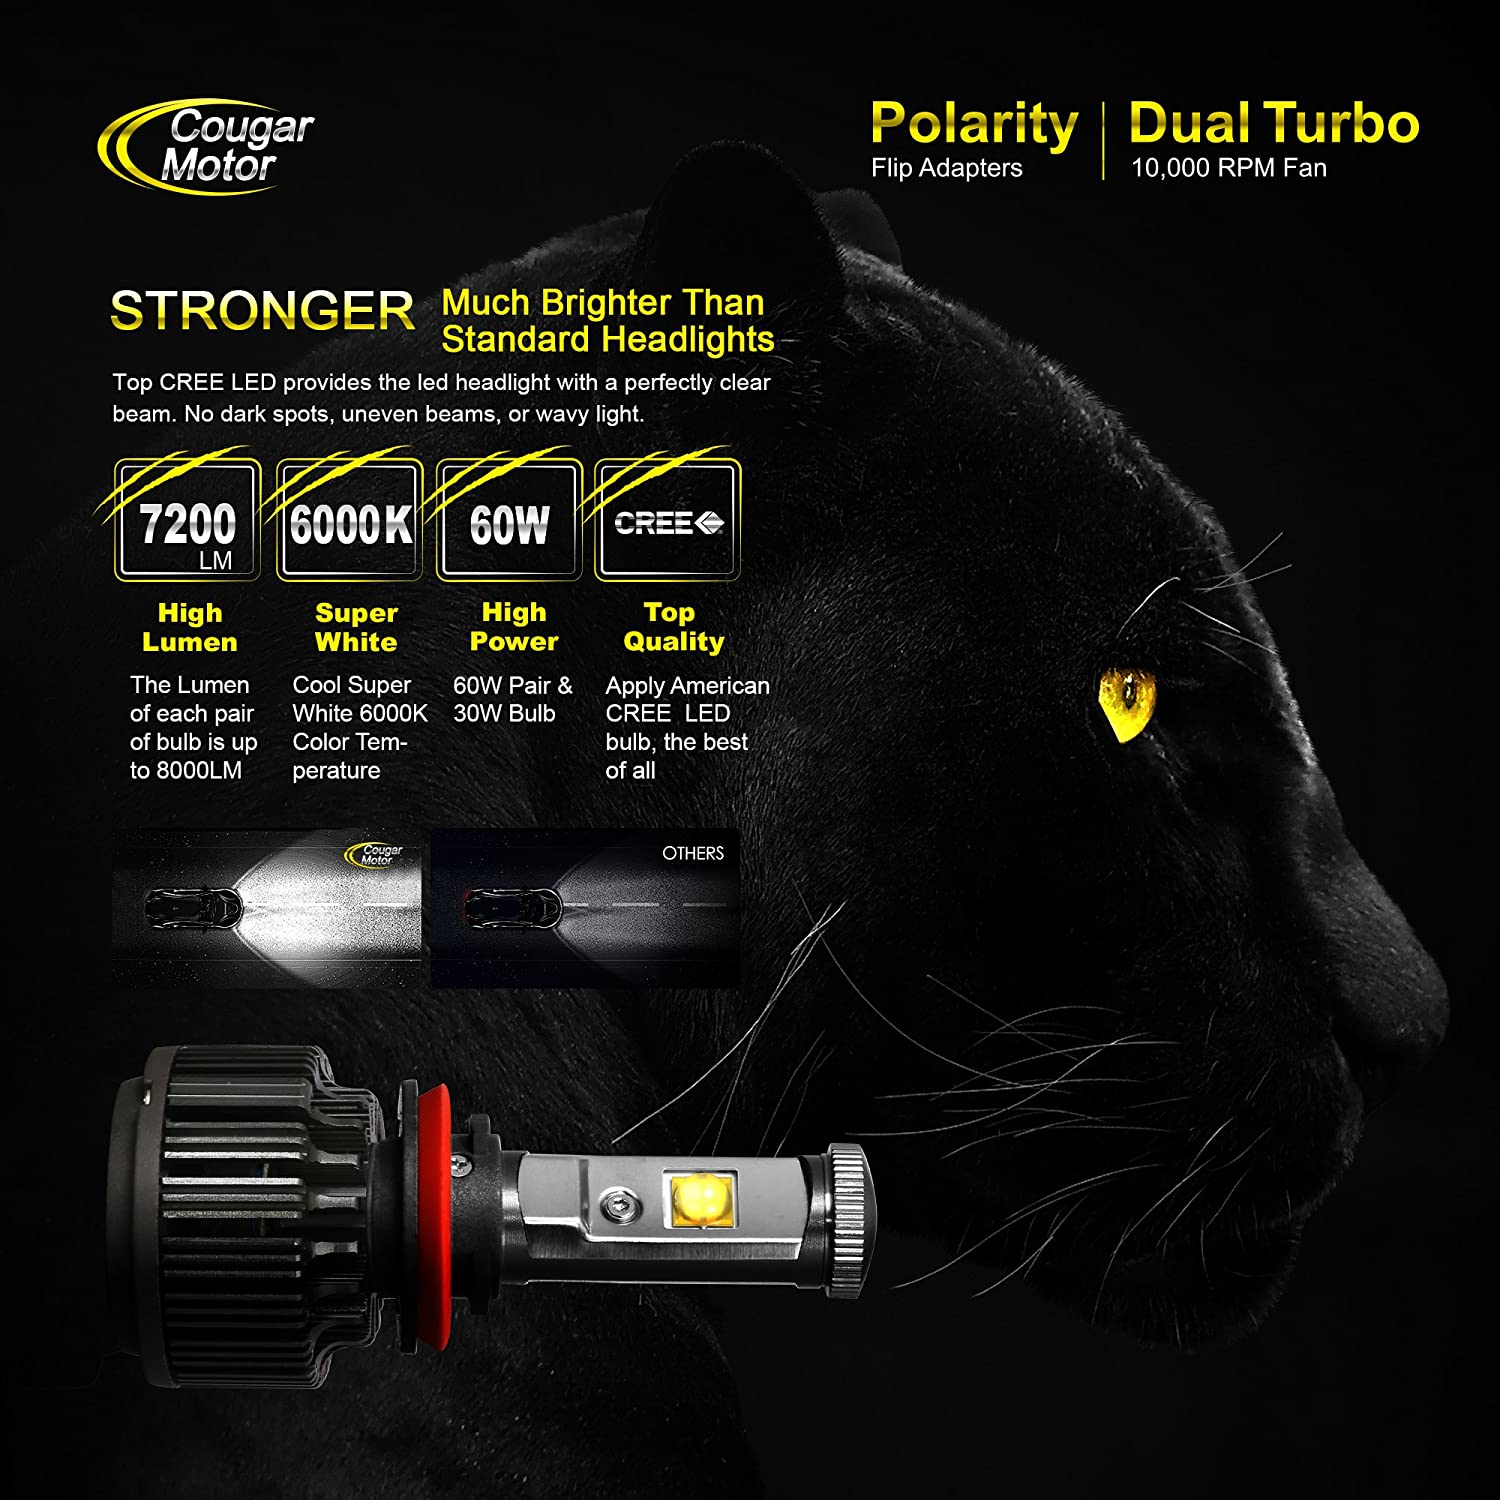 Cougar Motor Led Headlight Bulbs All In One Conversion Reverse Light Wire Diagram 99 Chevy Kit 9006 7200lm 6000k Cool White Cree 3 Year Warranty Automotive